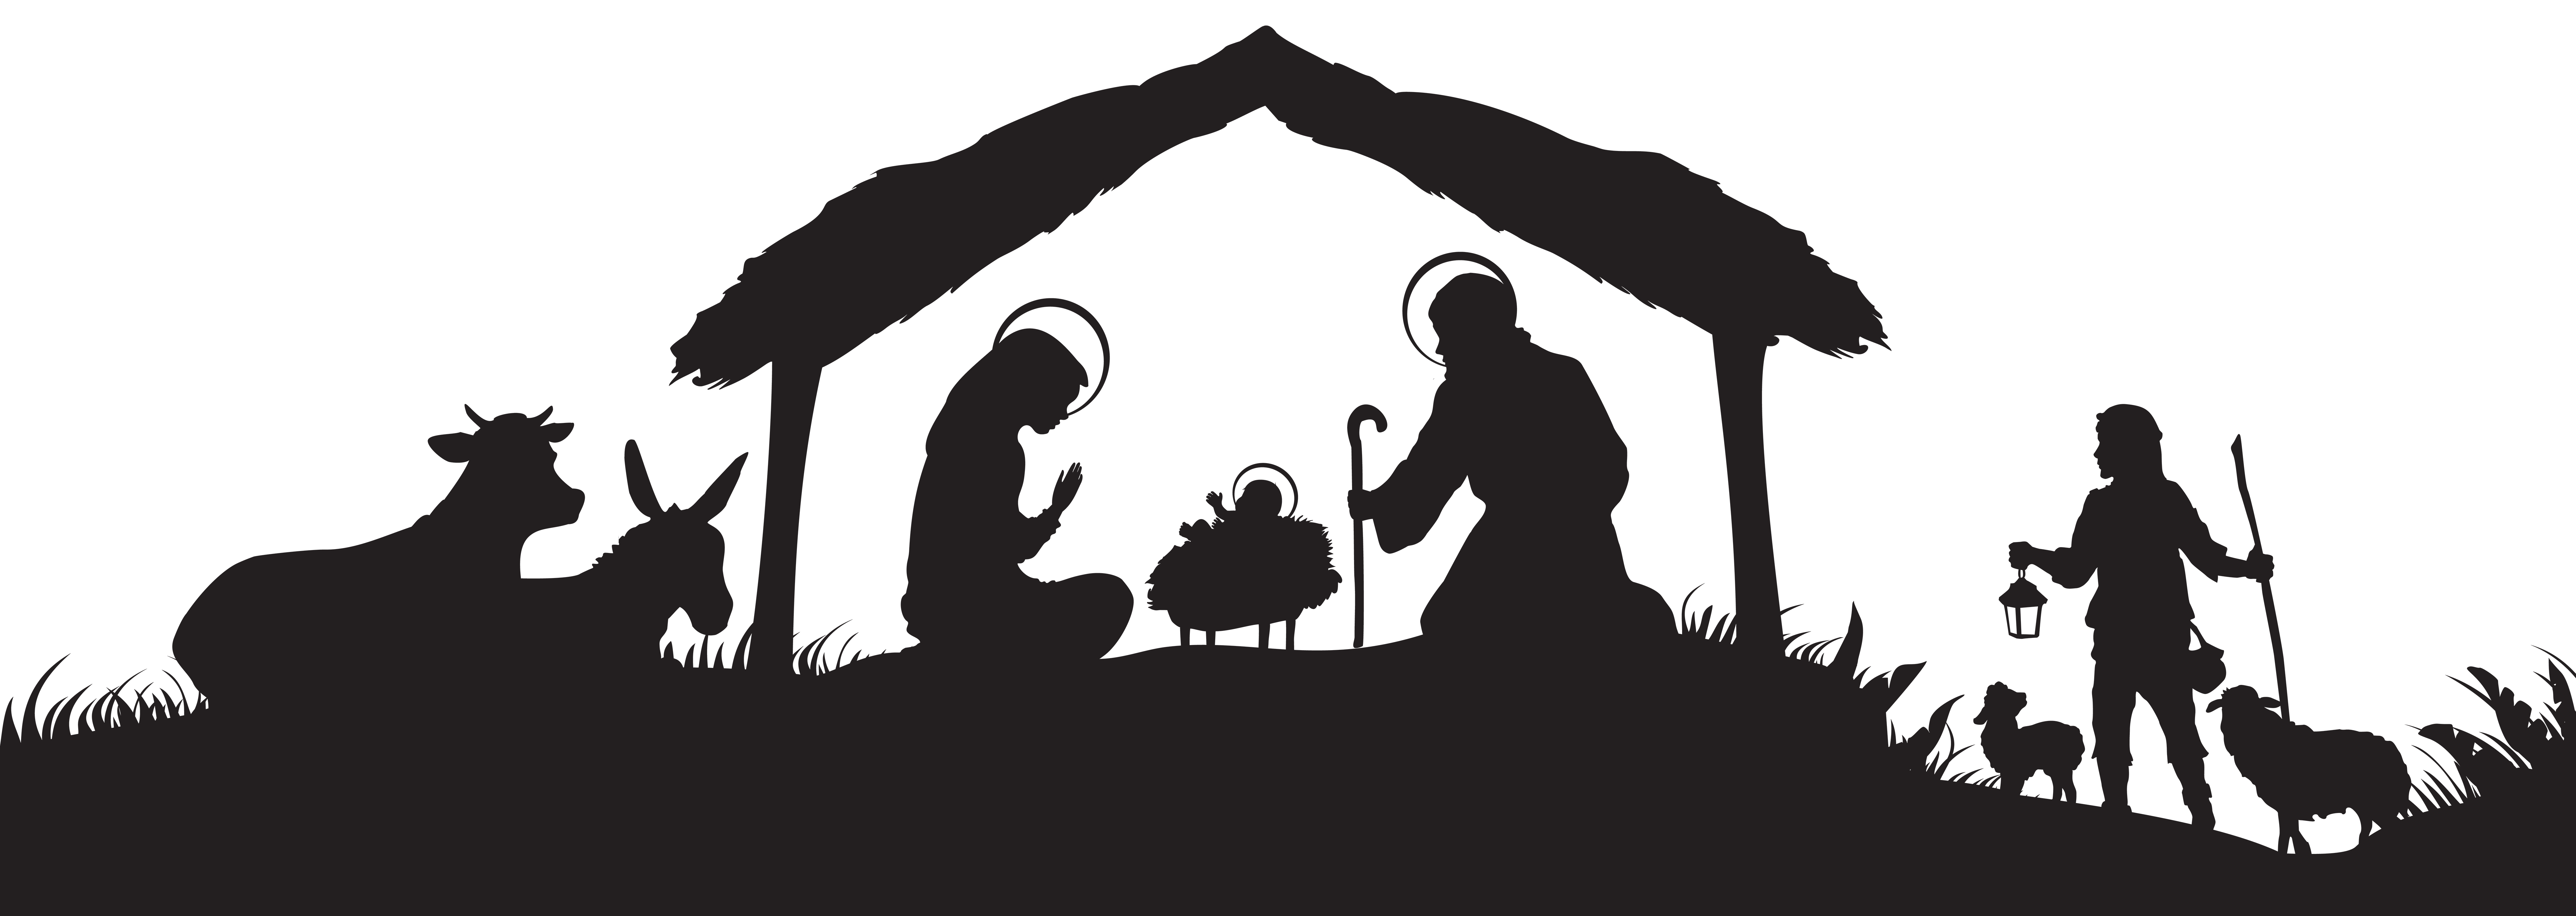 Lds clipart silhouette. Christmas nativity scene png